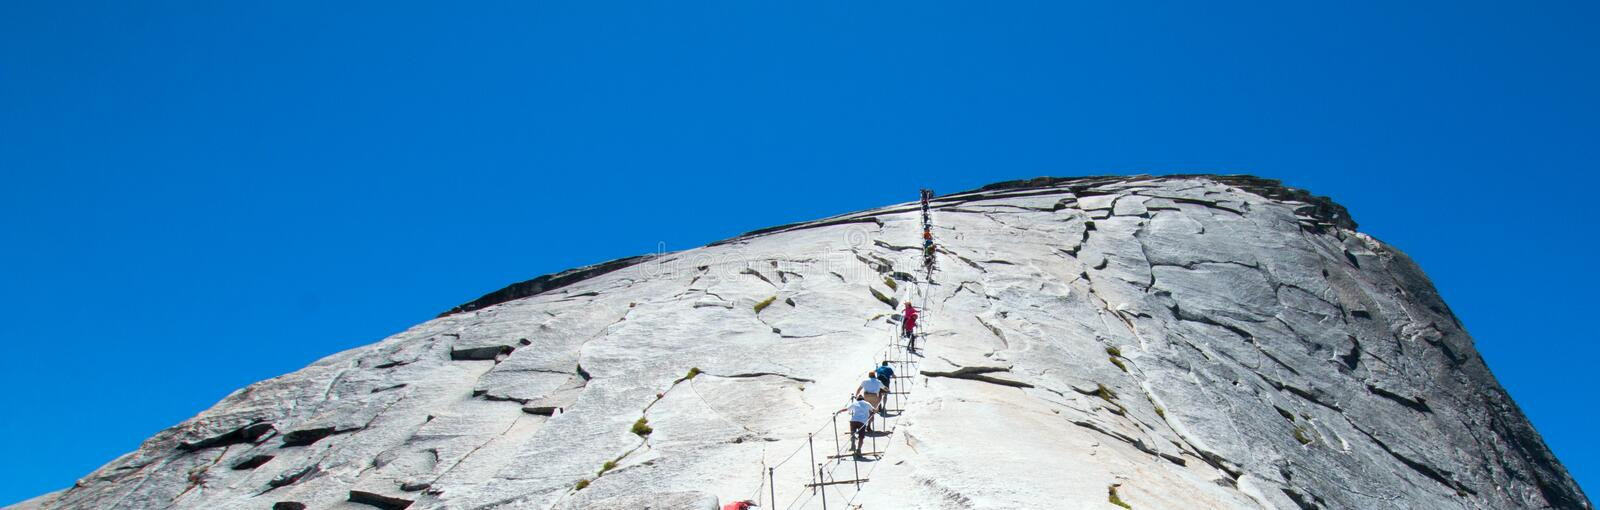 Climbers using cables to ascend Half Dome in Yosemite National Park in California USA royalty free stock photo